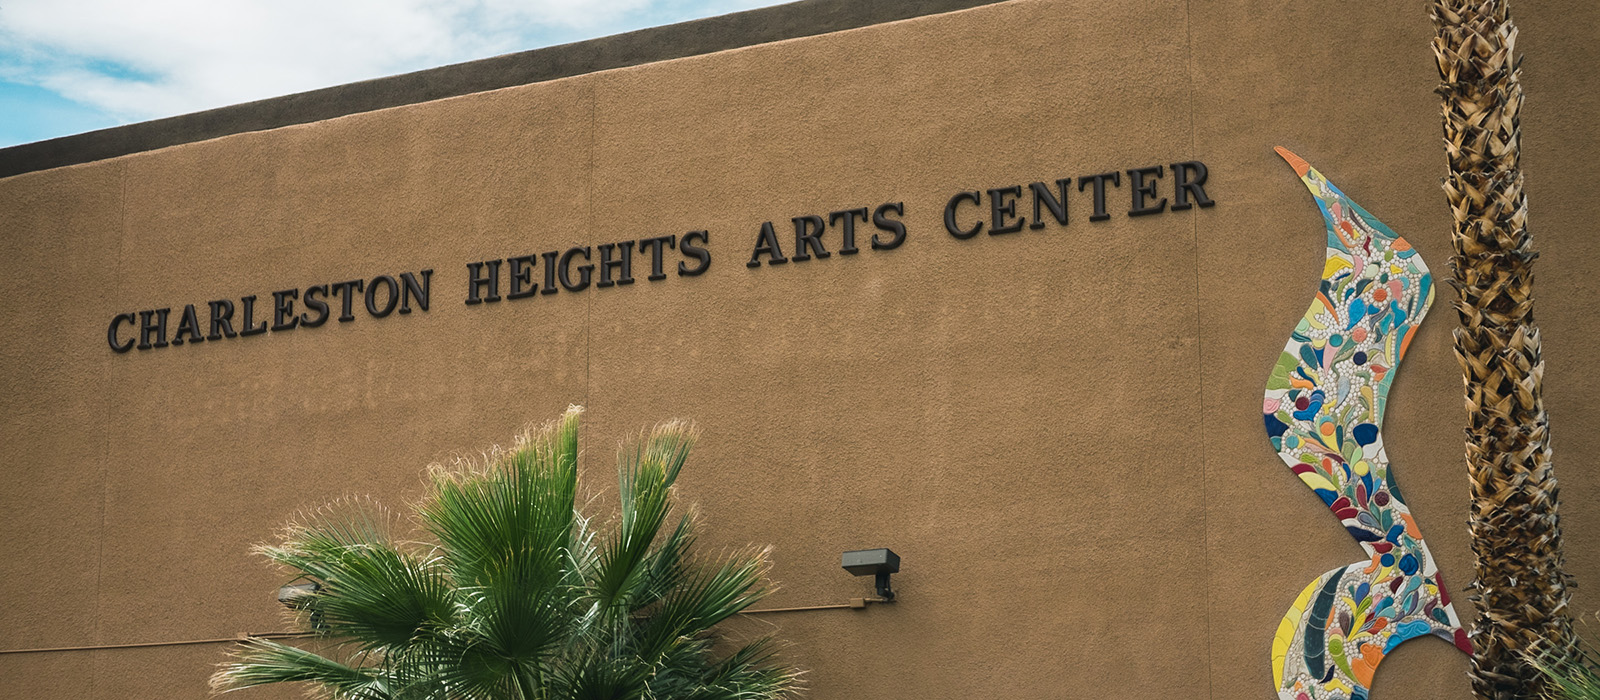 image for Charleston Heights Art Center